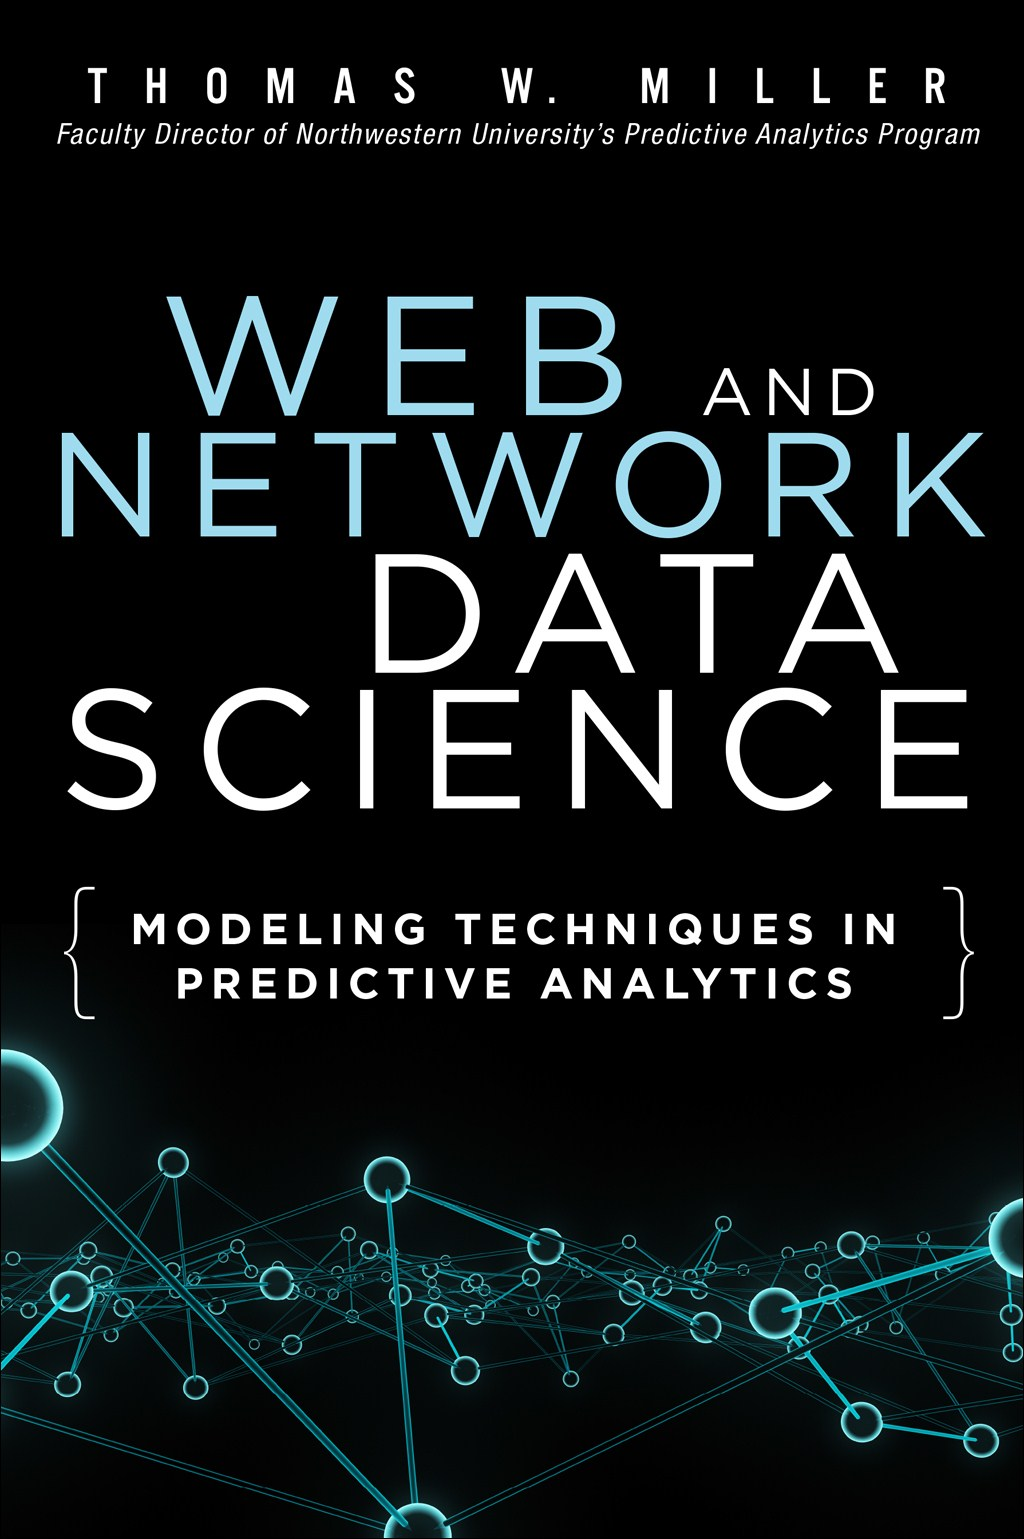 Web and Network Data Science: Modeling Techniques in Predictive Analytics